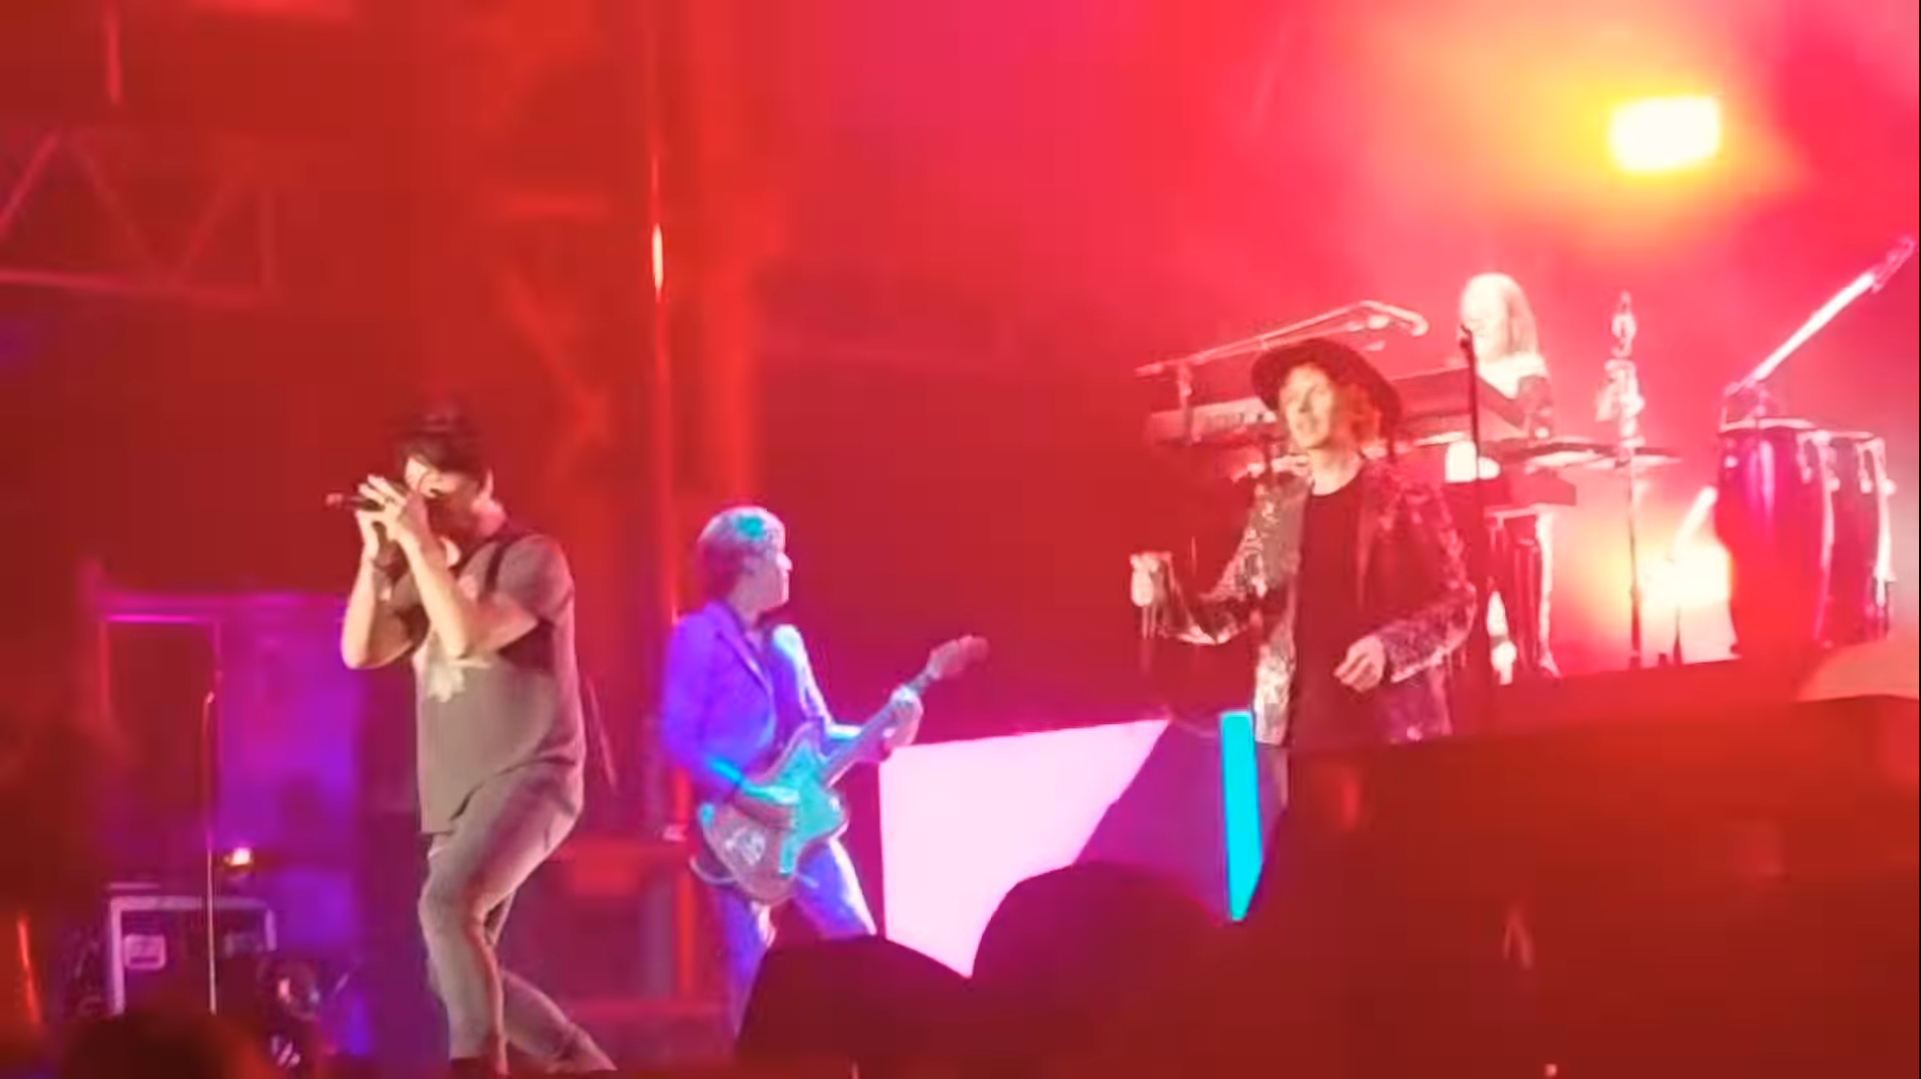 Fans capture Beck & Gary Numan joining forces at RiotFest